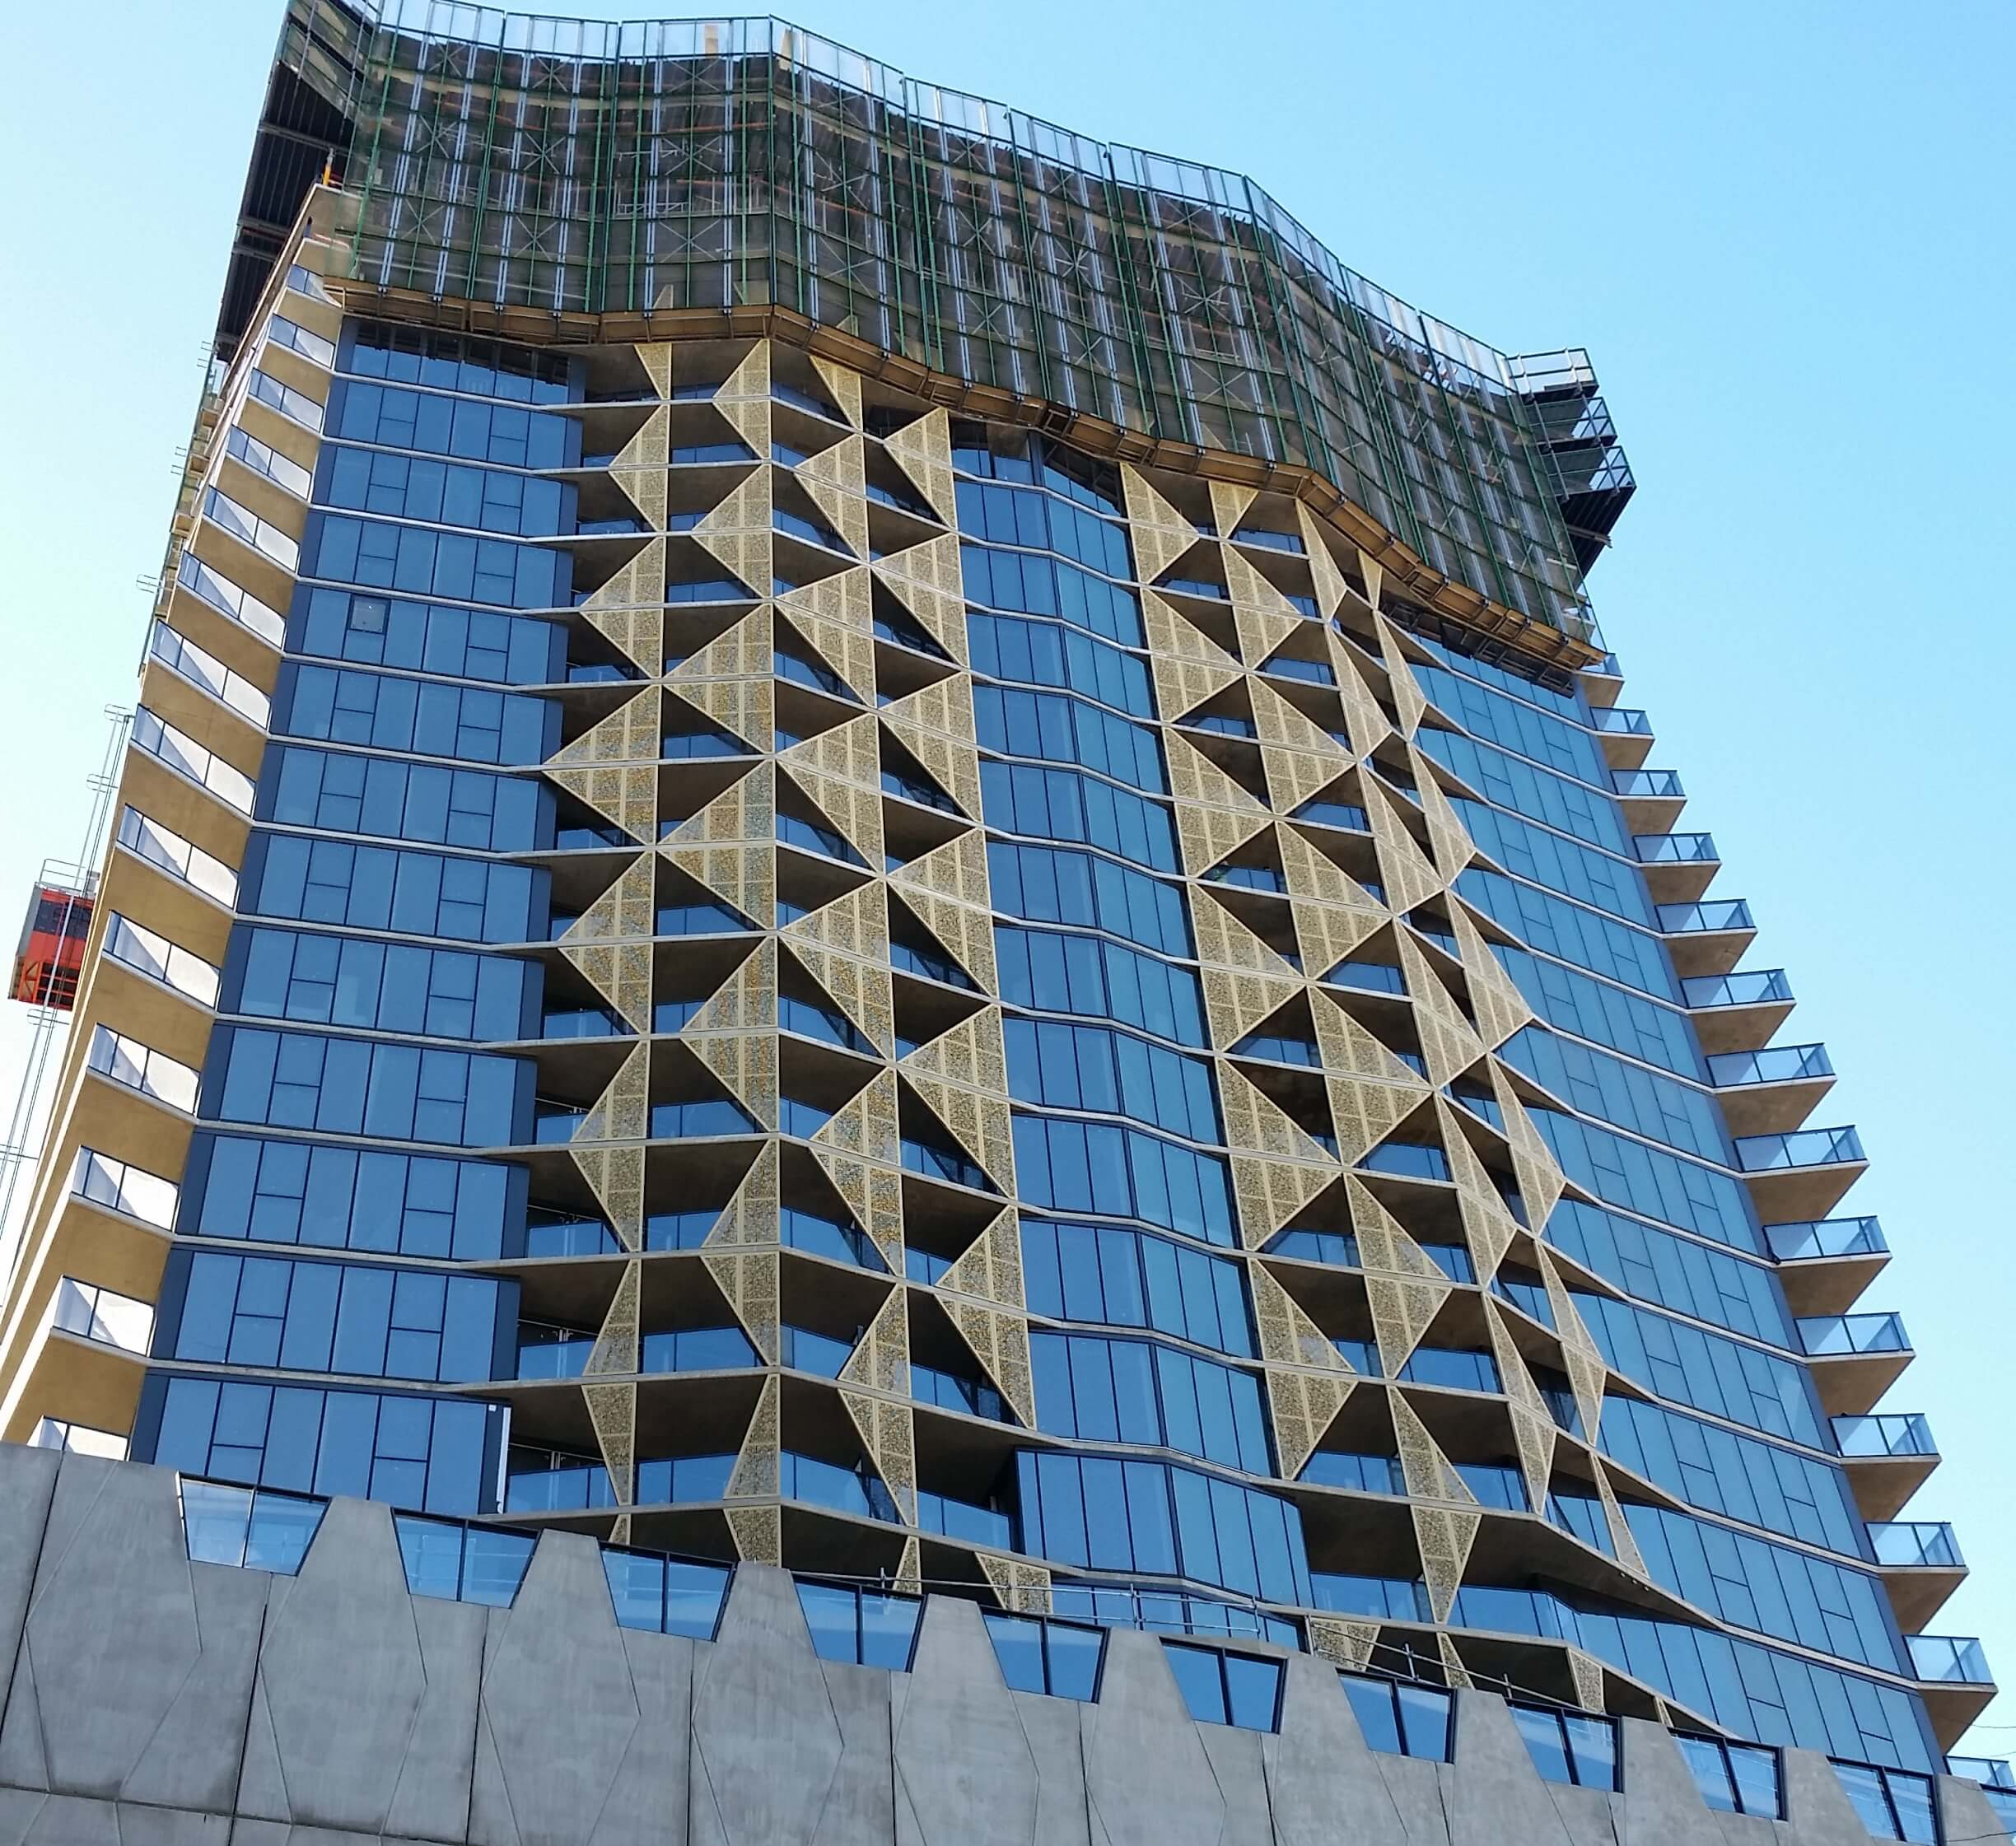 Asurco roofing and cladding at the realm